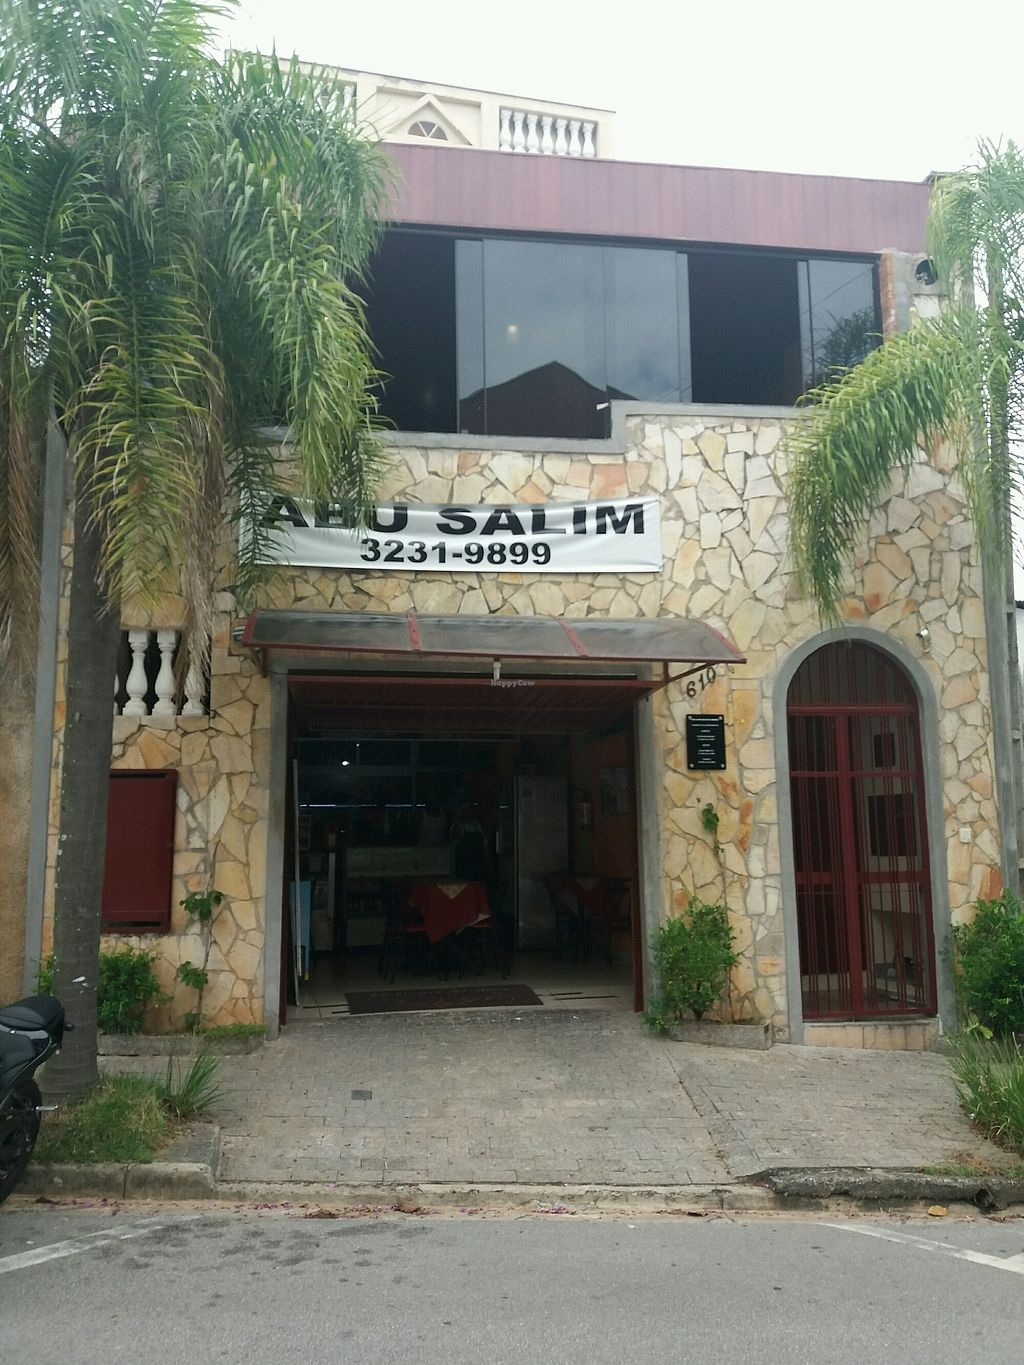 """Photo of Abu Salin Delicias Arabes   by <a href=""""/members/profile/Macintouch"""">Macintouch</a> <br/>Front Door <br/> January 20, 2018  - <a href='/contact/abuse/image/109940/349021'>Report</a>"""